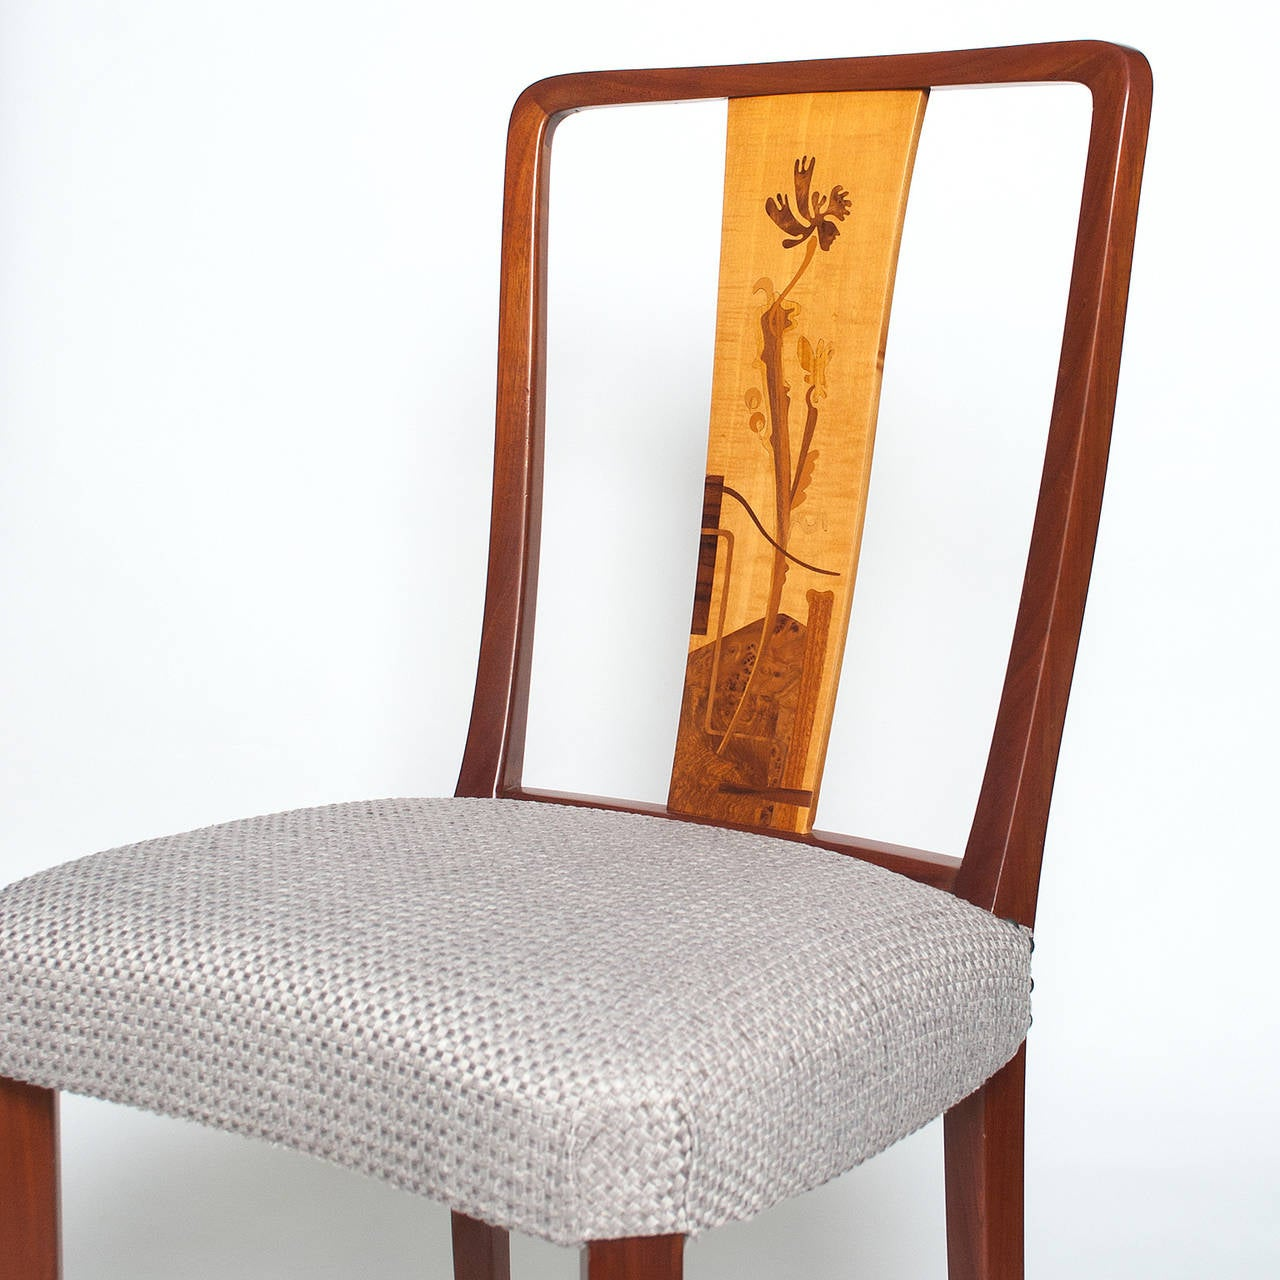 20th Century Scandinavian Modern Erik Chambert Set of Four Dining Chairs For Sale